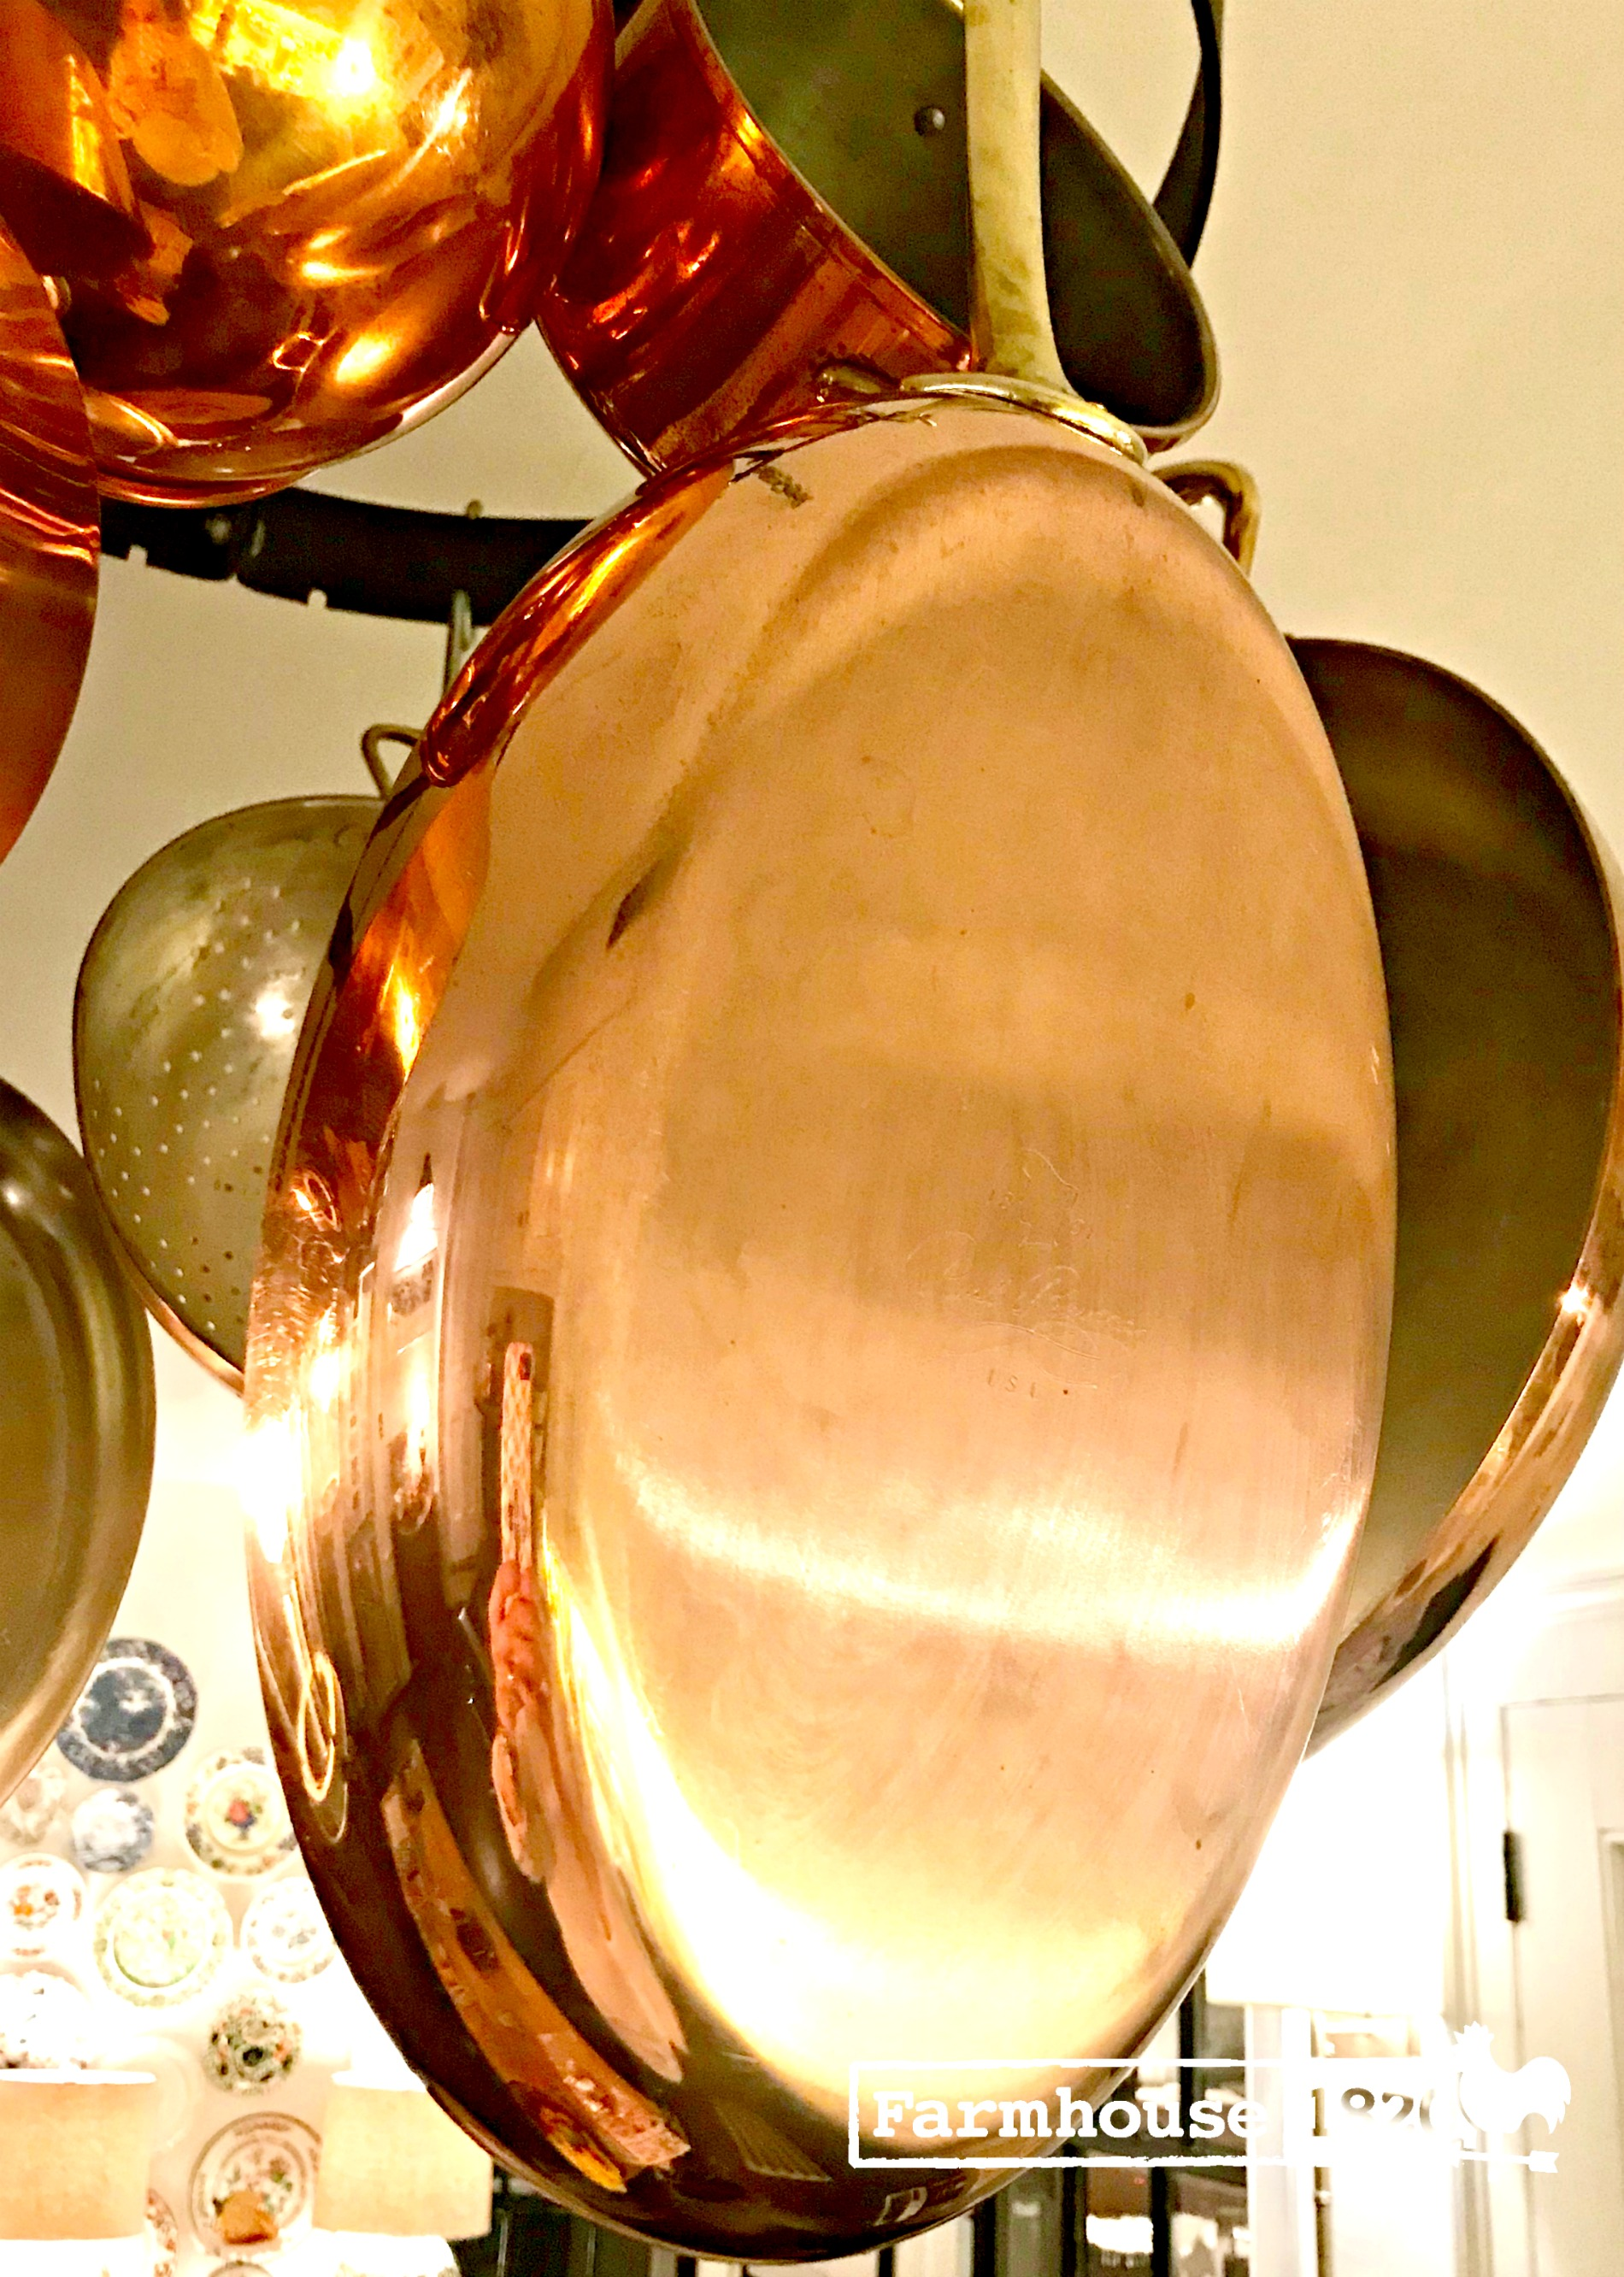 copper cookware - where to find the best copper cookware bargains